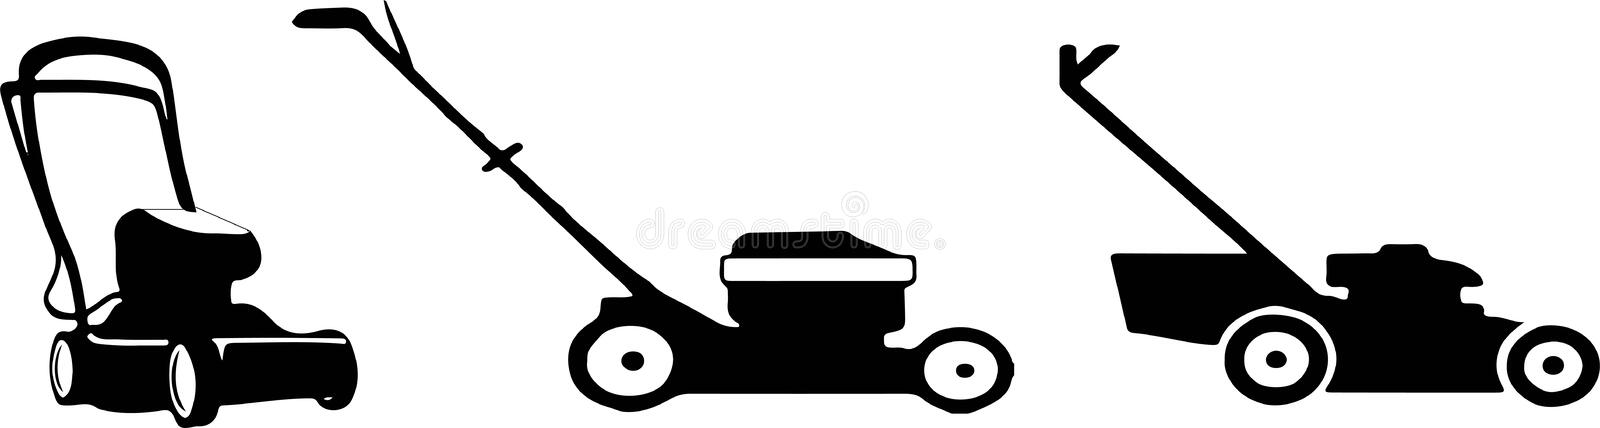 Lawn mower icon on white background. Lawn,machine,mower stock illustration